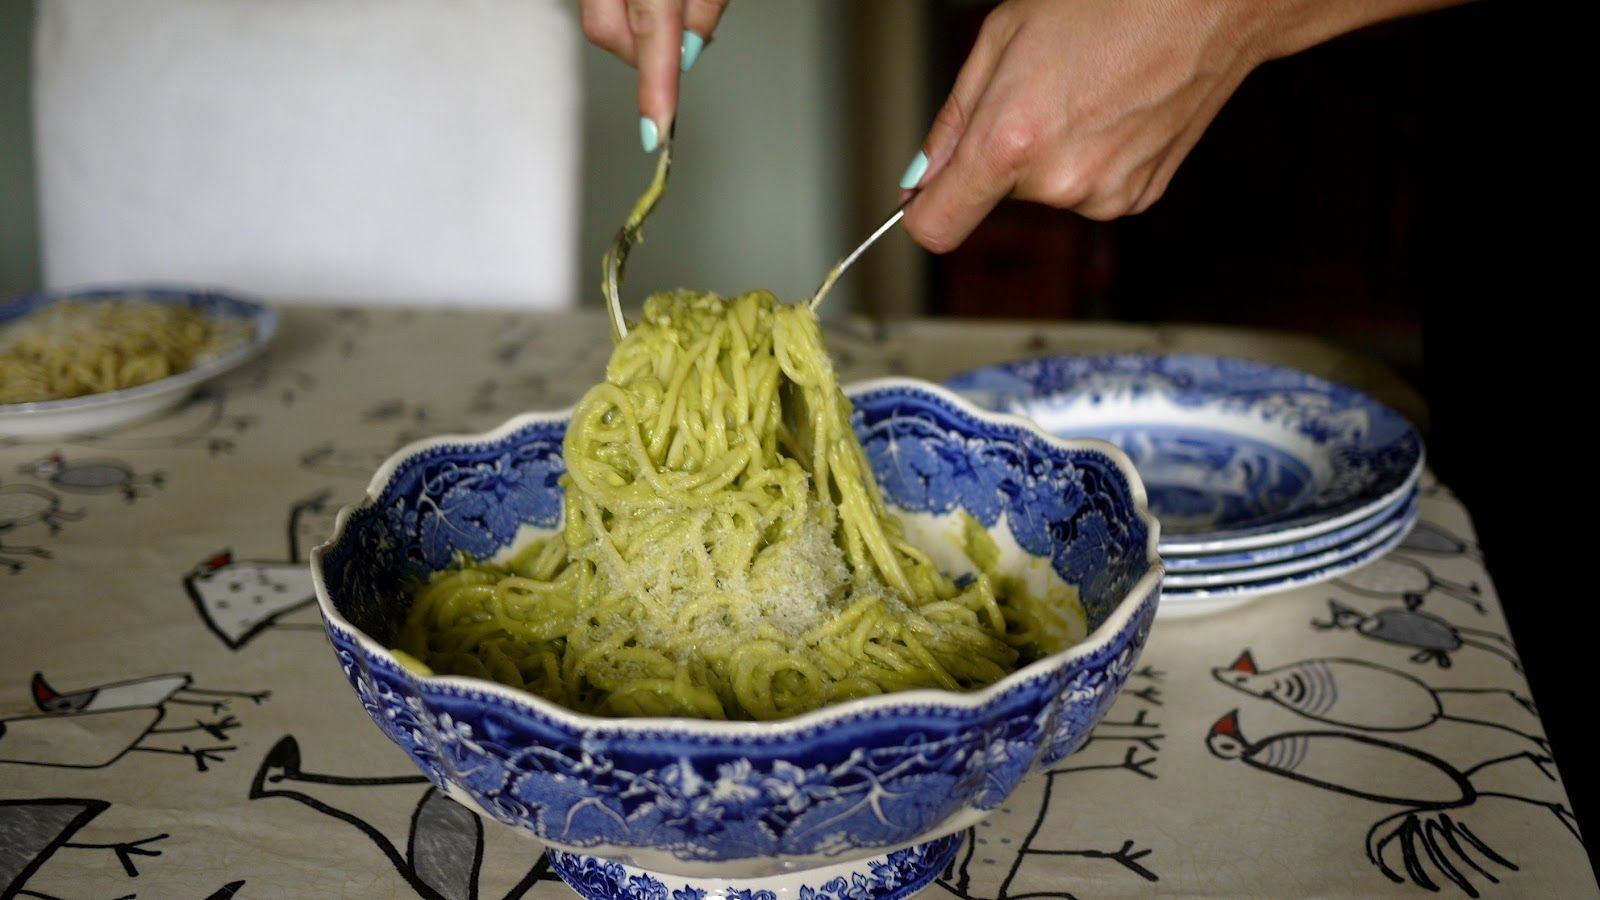 """""""Creamy"""" Avocado Spagetti. Avocados aid fat burning, reduce inflammation & bloating, reduce cholesterol, regulate blood sugar, reduce signs of ageing, improve bad skin, work to prevent and fight cancer & heart disease.   They're also freaking delicious."""